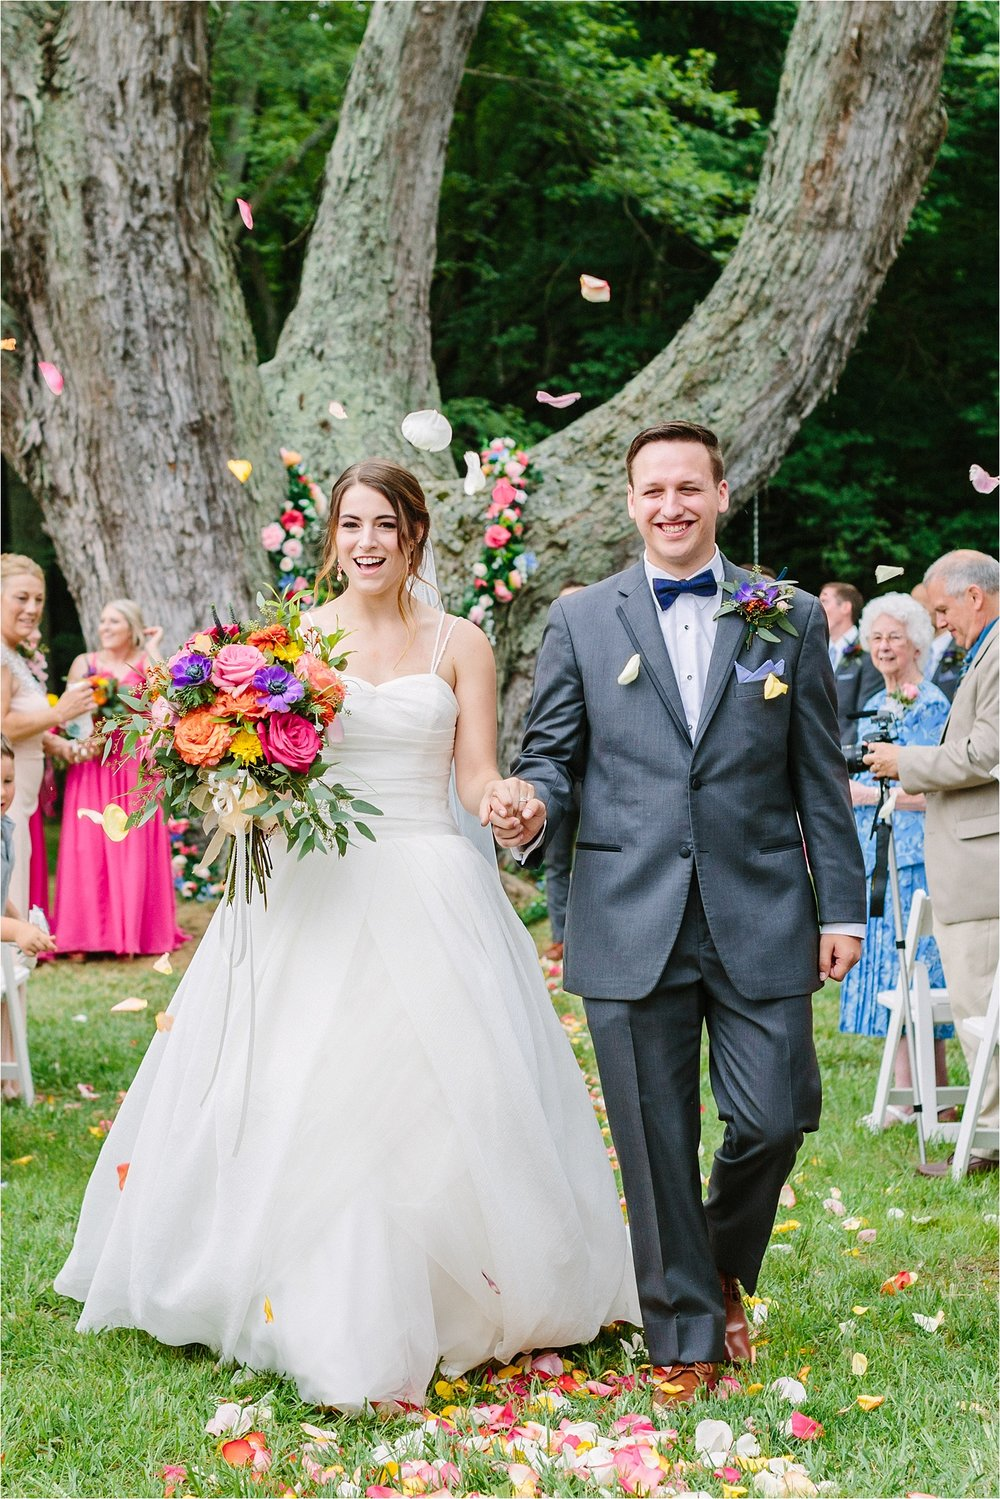 They had a backyard wedding under a giant tree and it was ridiculously sweet.